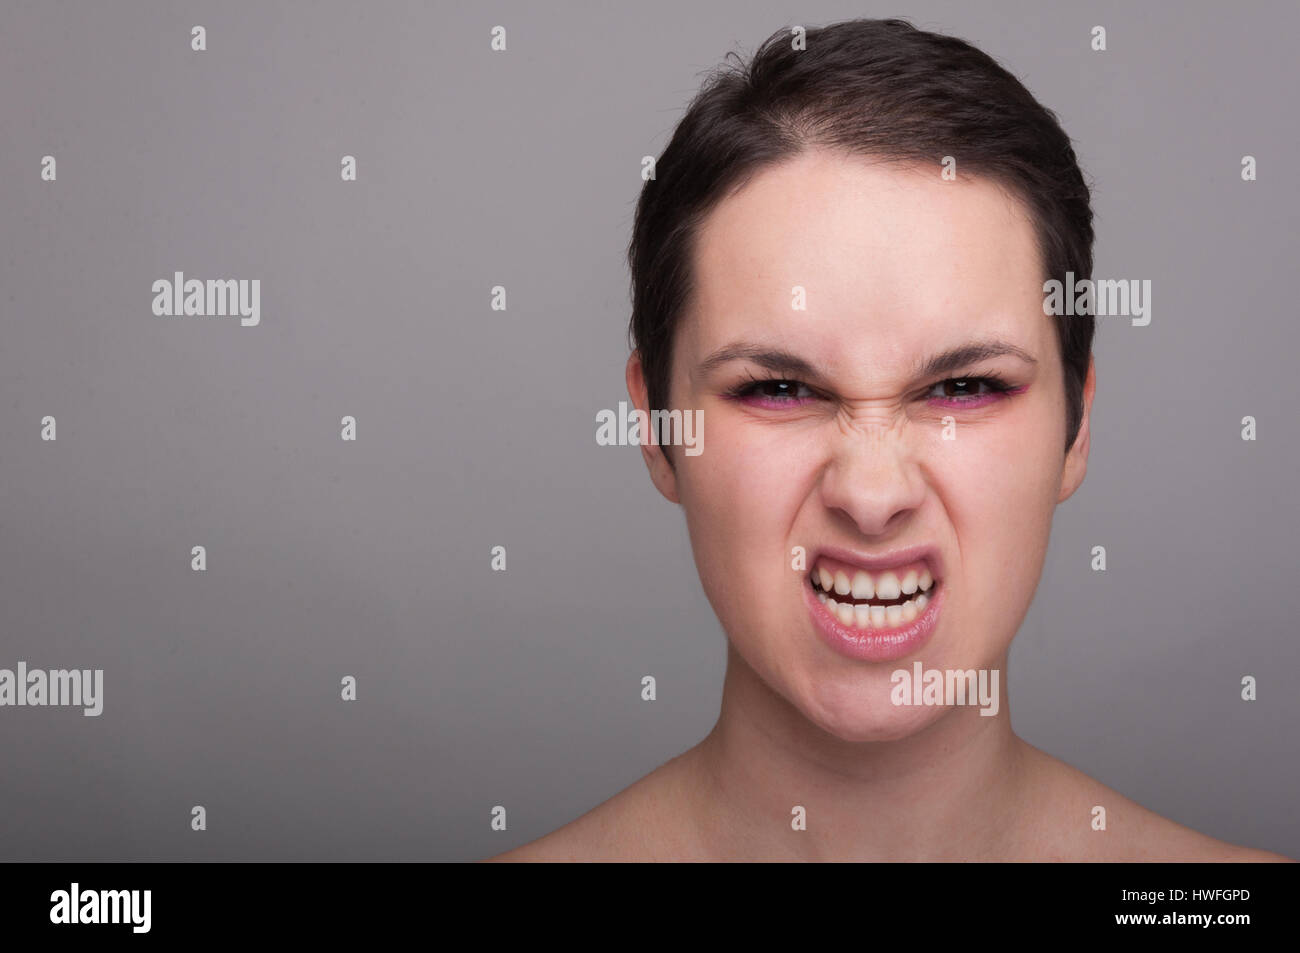 Mad young female acting rude or antisocial on gray background with copytext space - Stock Image